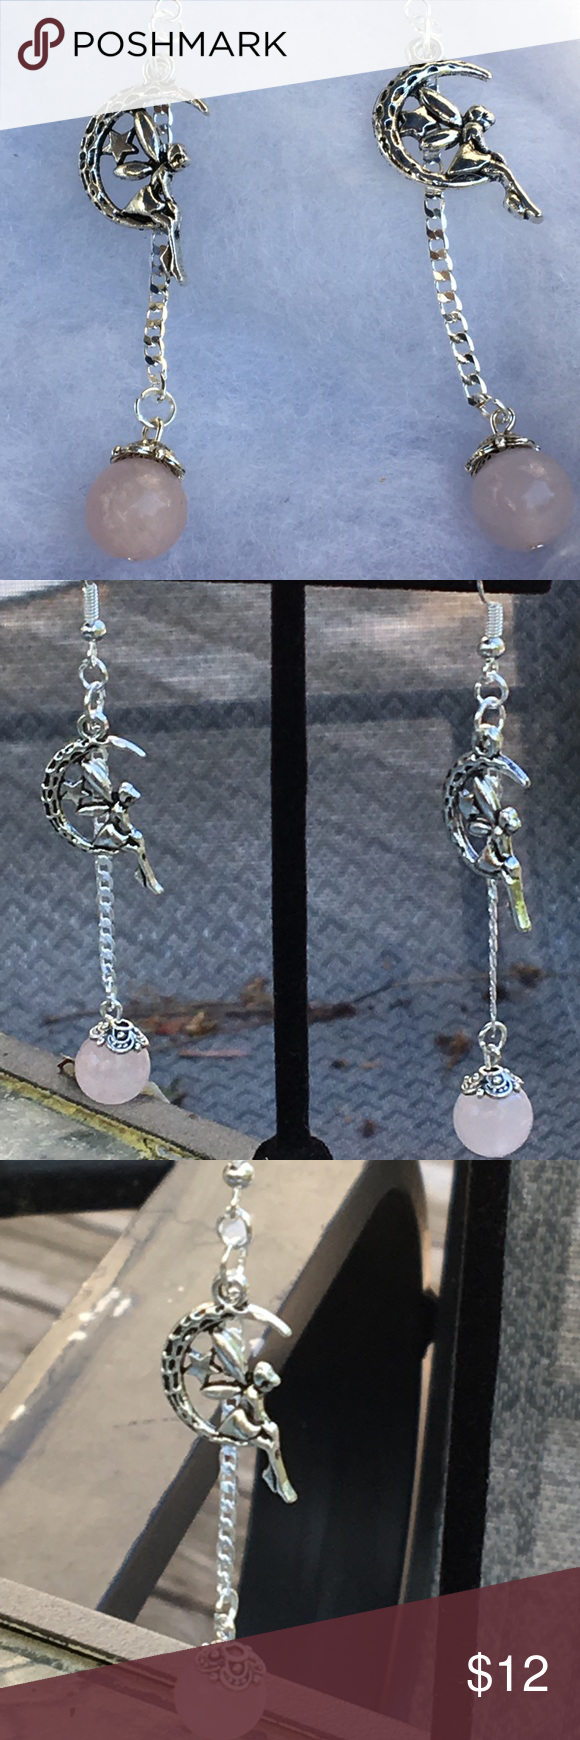 497116b27 Pink Rose Quartz Silver Fairy Earrings These lovely earrings are made with  natural rose quartz and